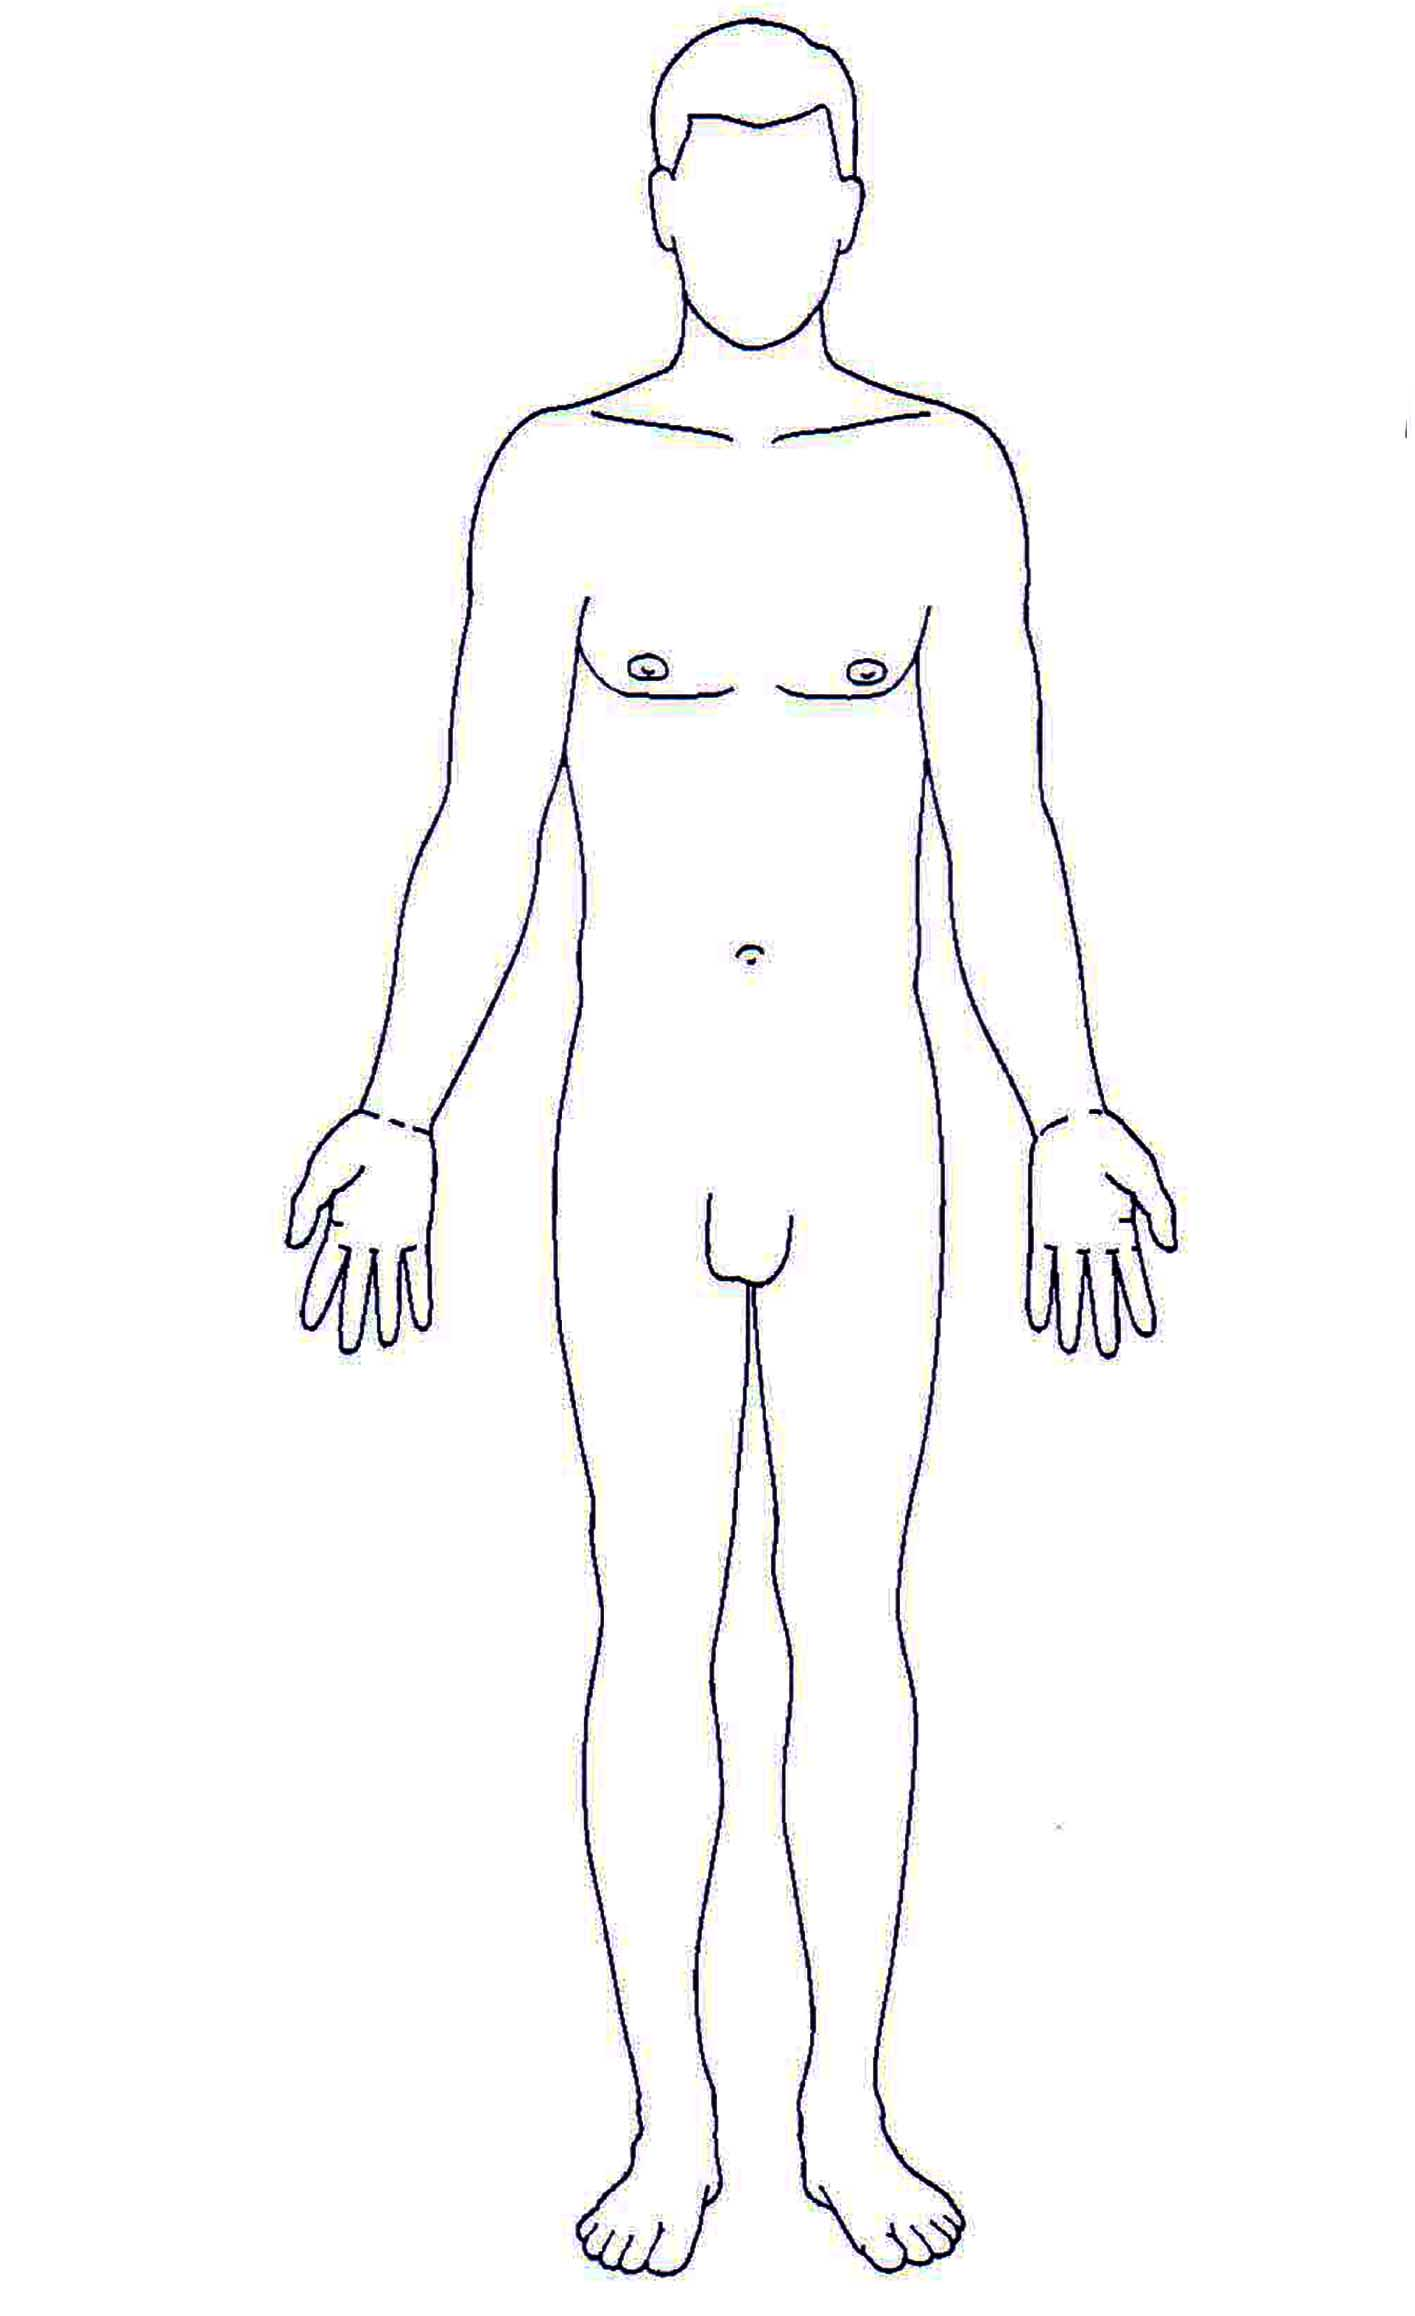 Anatomical Position of Body